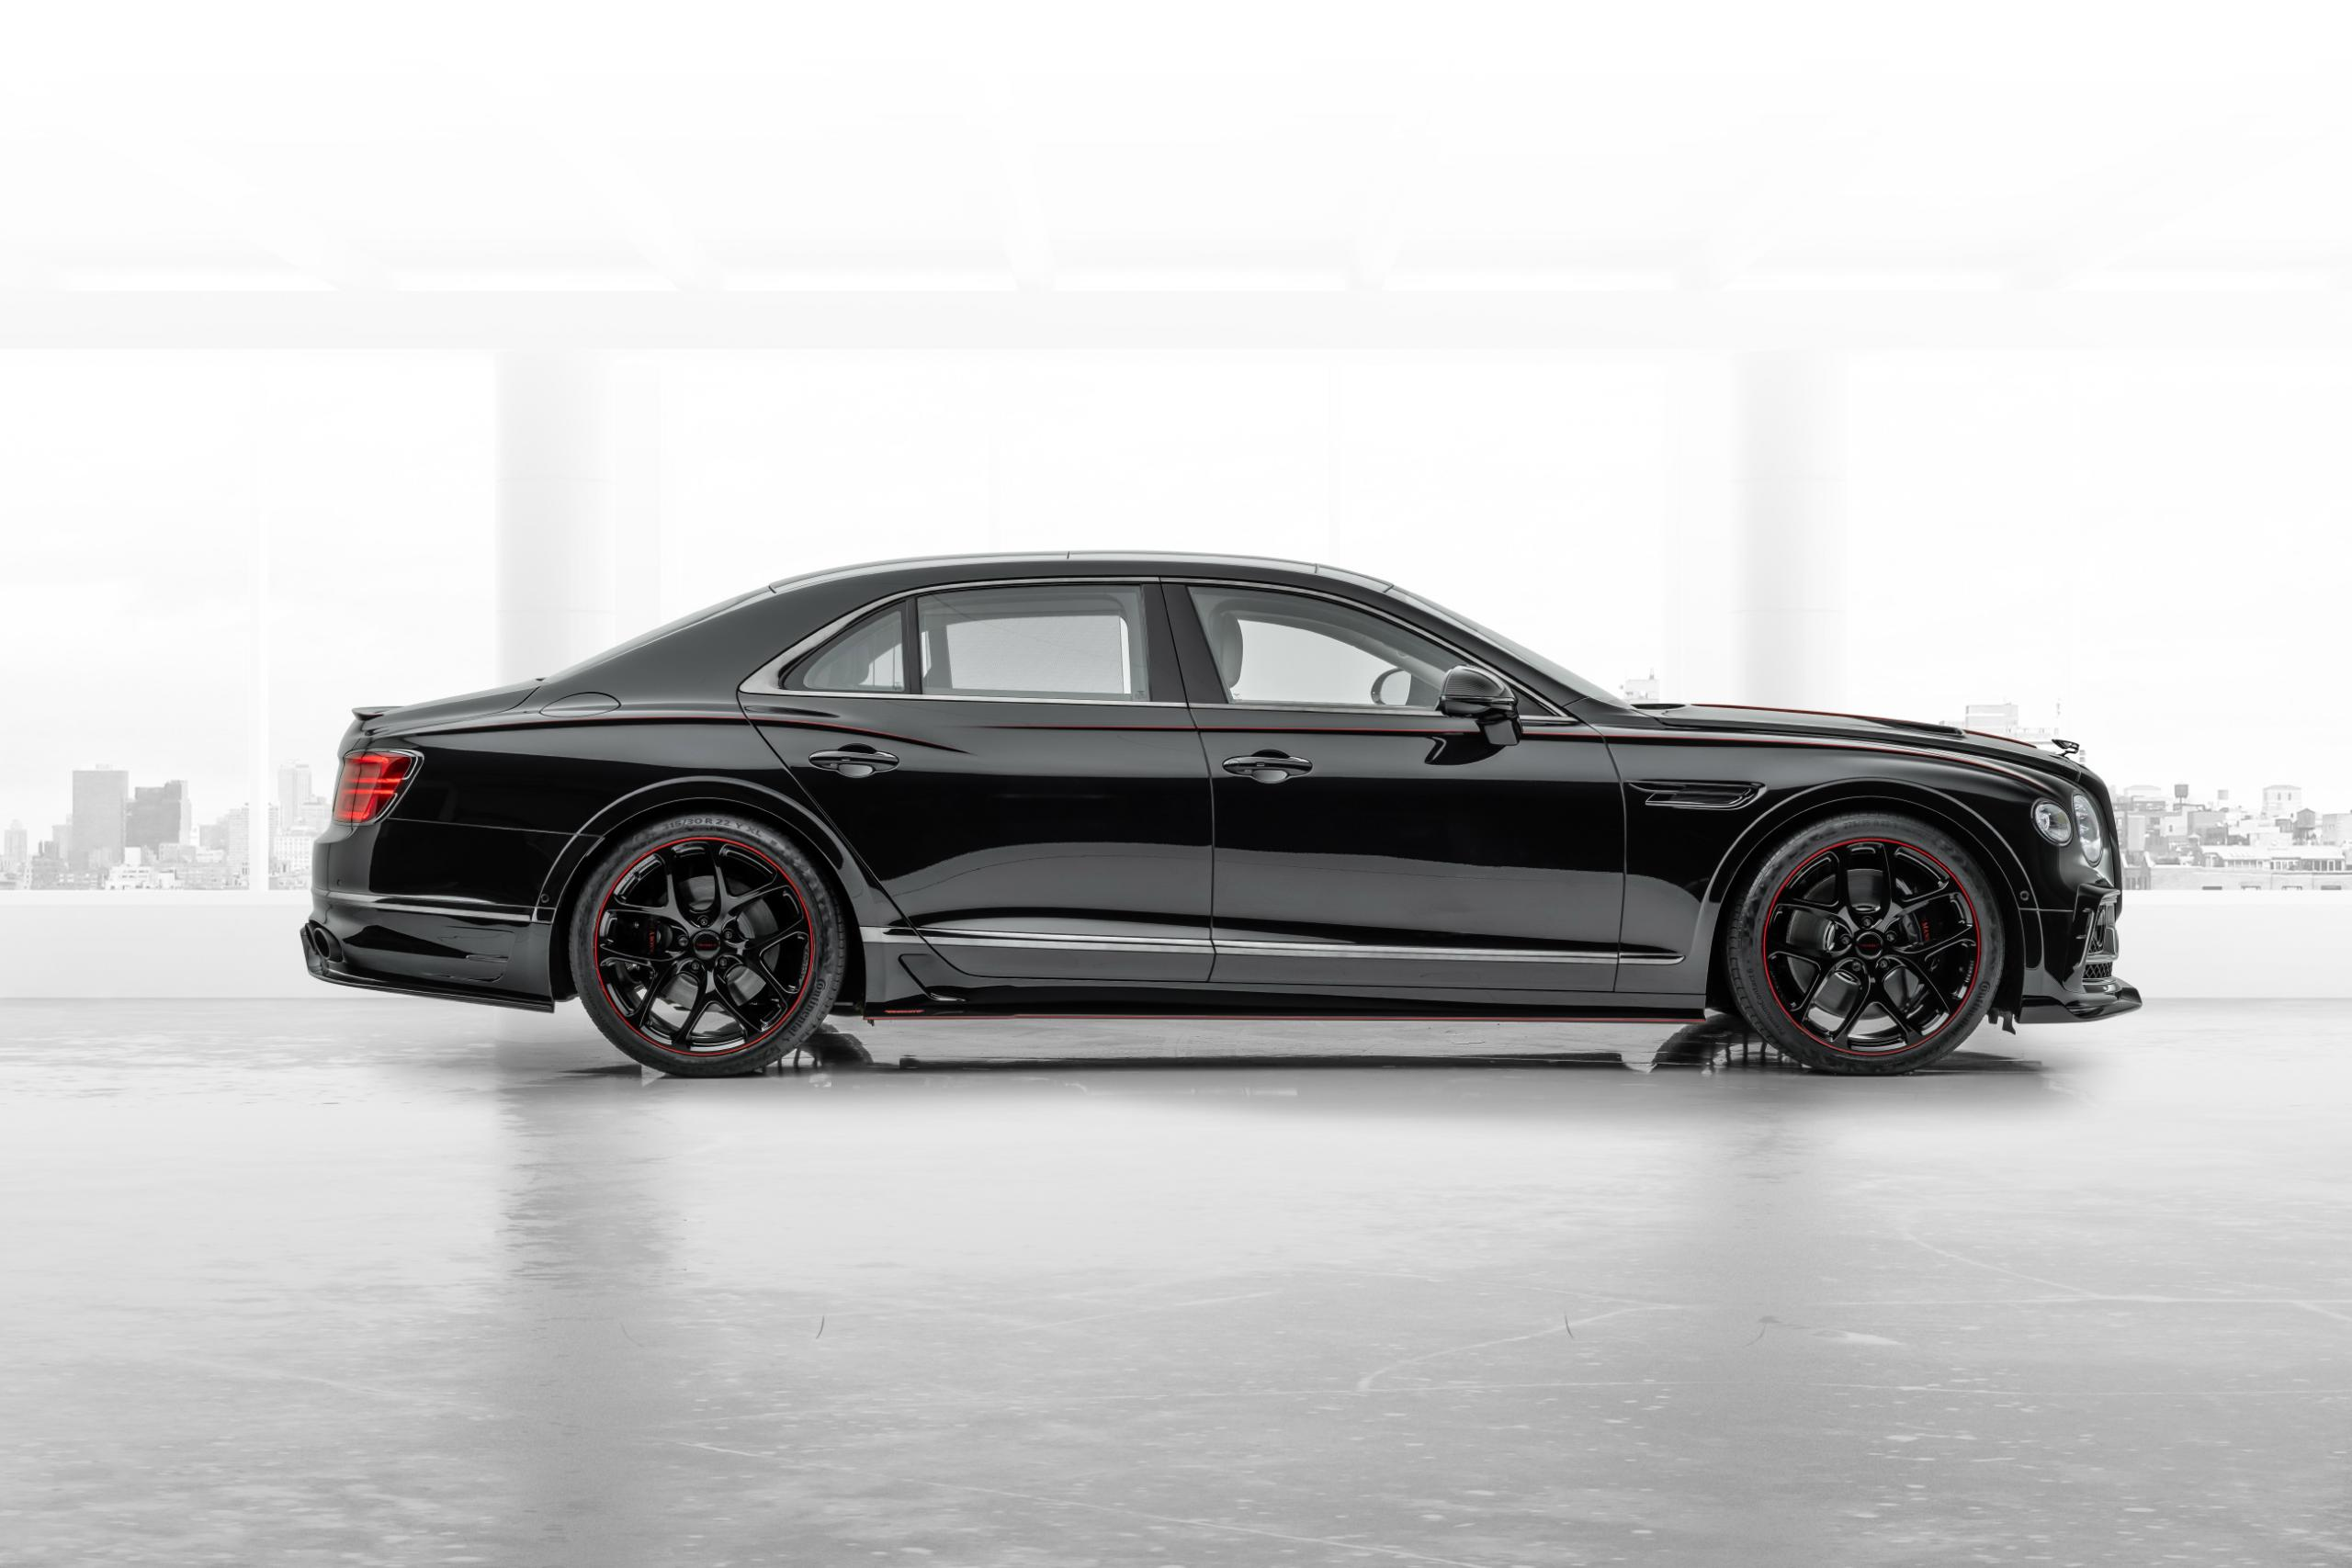 mansory bentley flying spur body kit side view side skirts by5 wheel rim